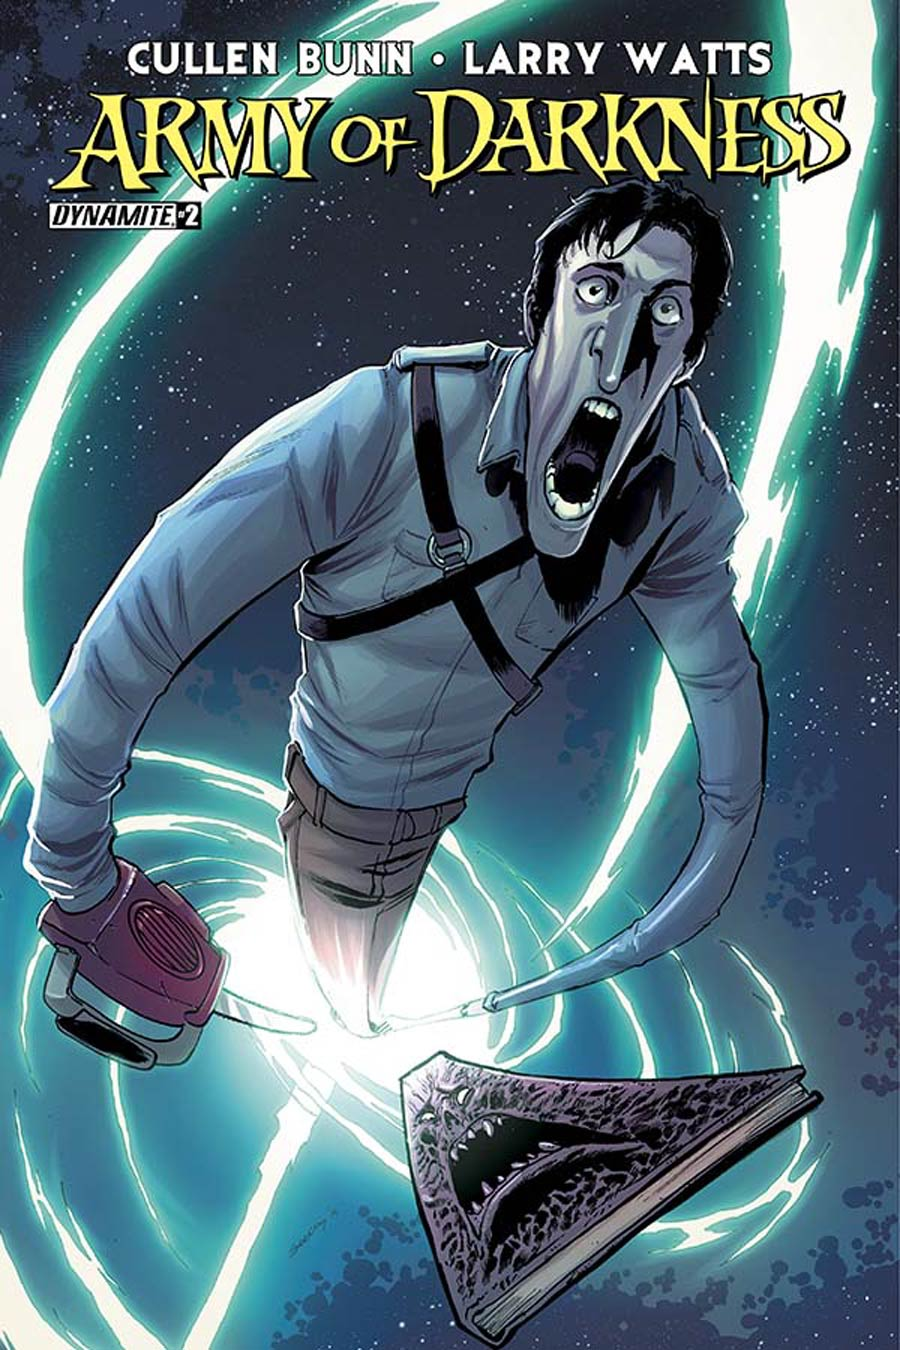 Army Of Darkness Vol 4 #2 Cover B Variant Tim Seeley Cover